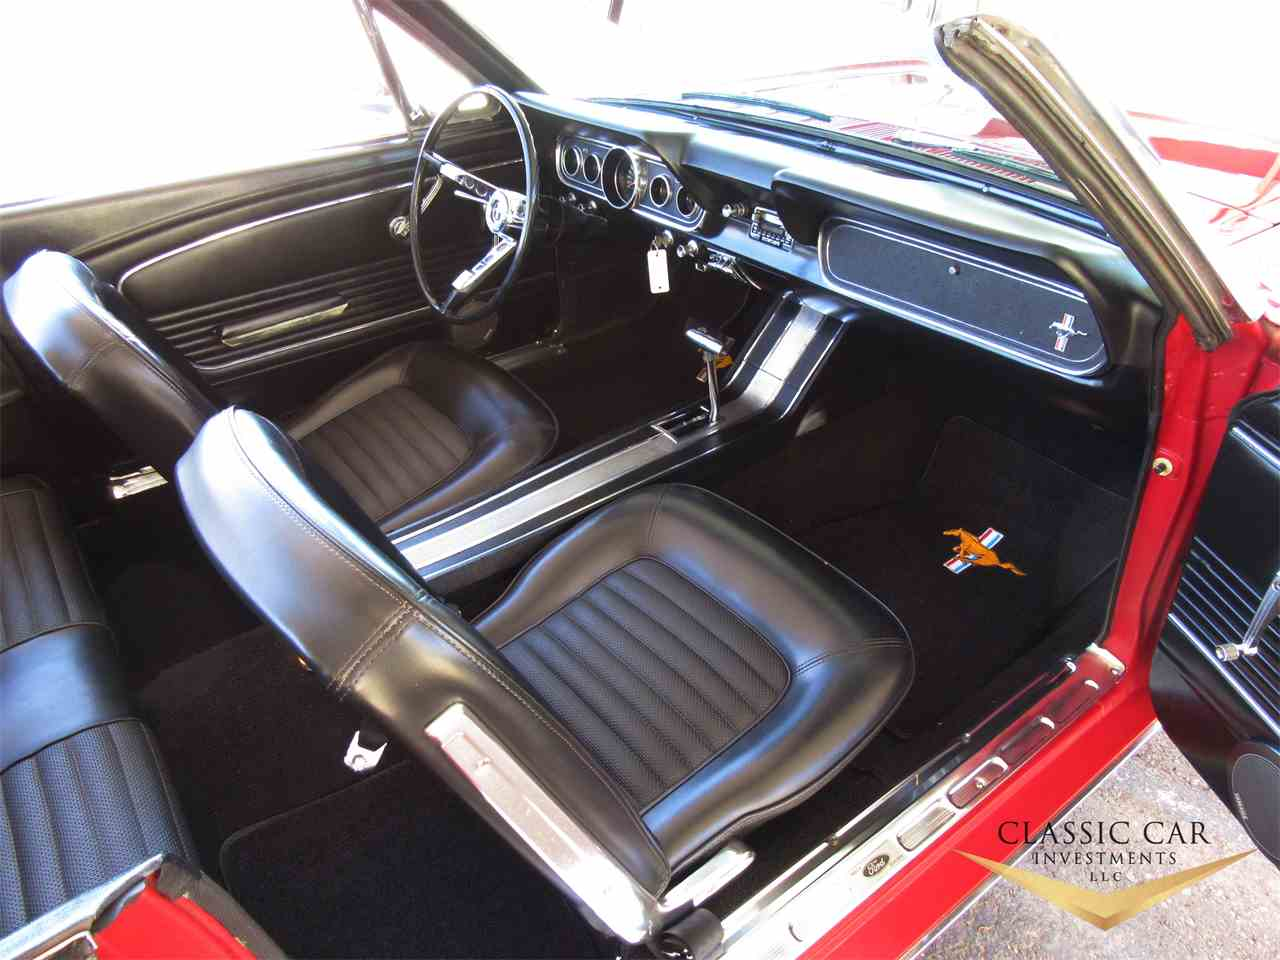 Large Picture of '66 Ford Mustang located in scottsdale Arizona - $29,500.00 - MTOM